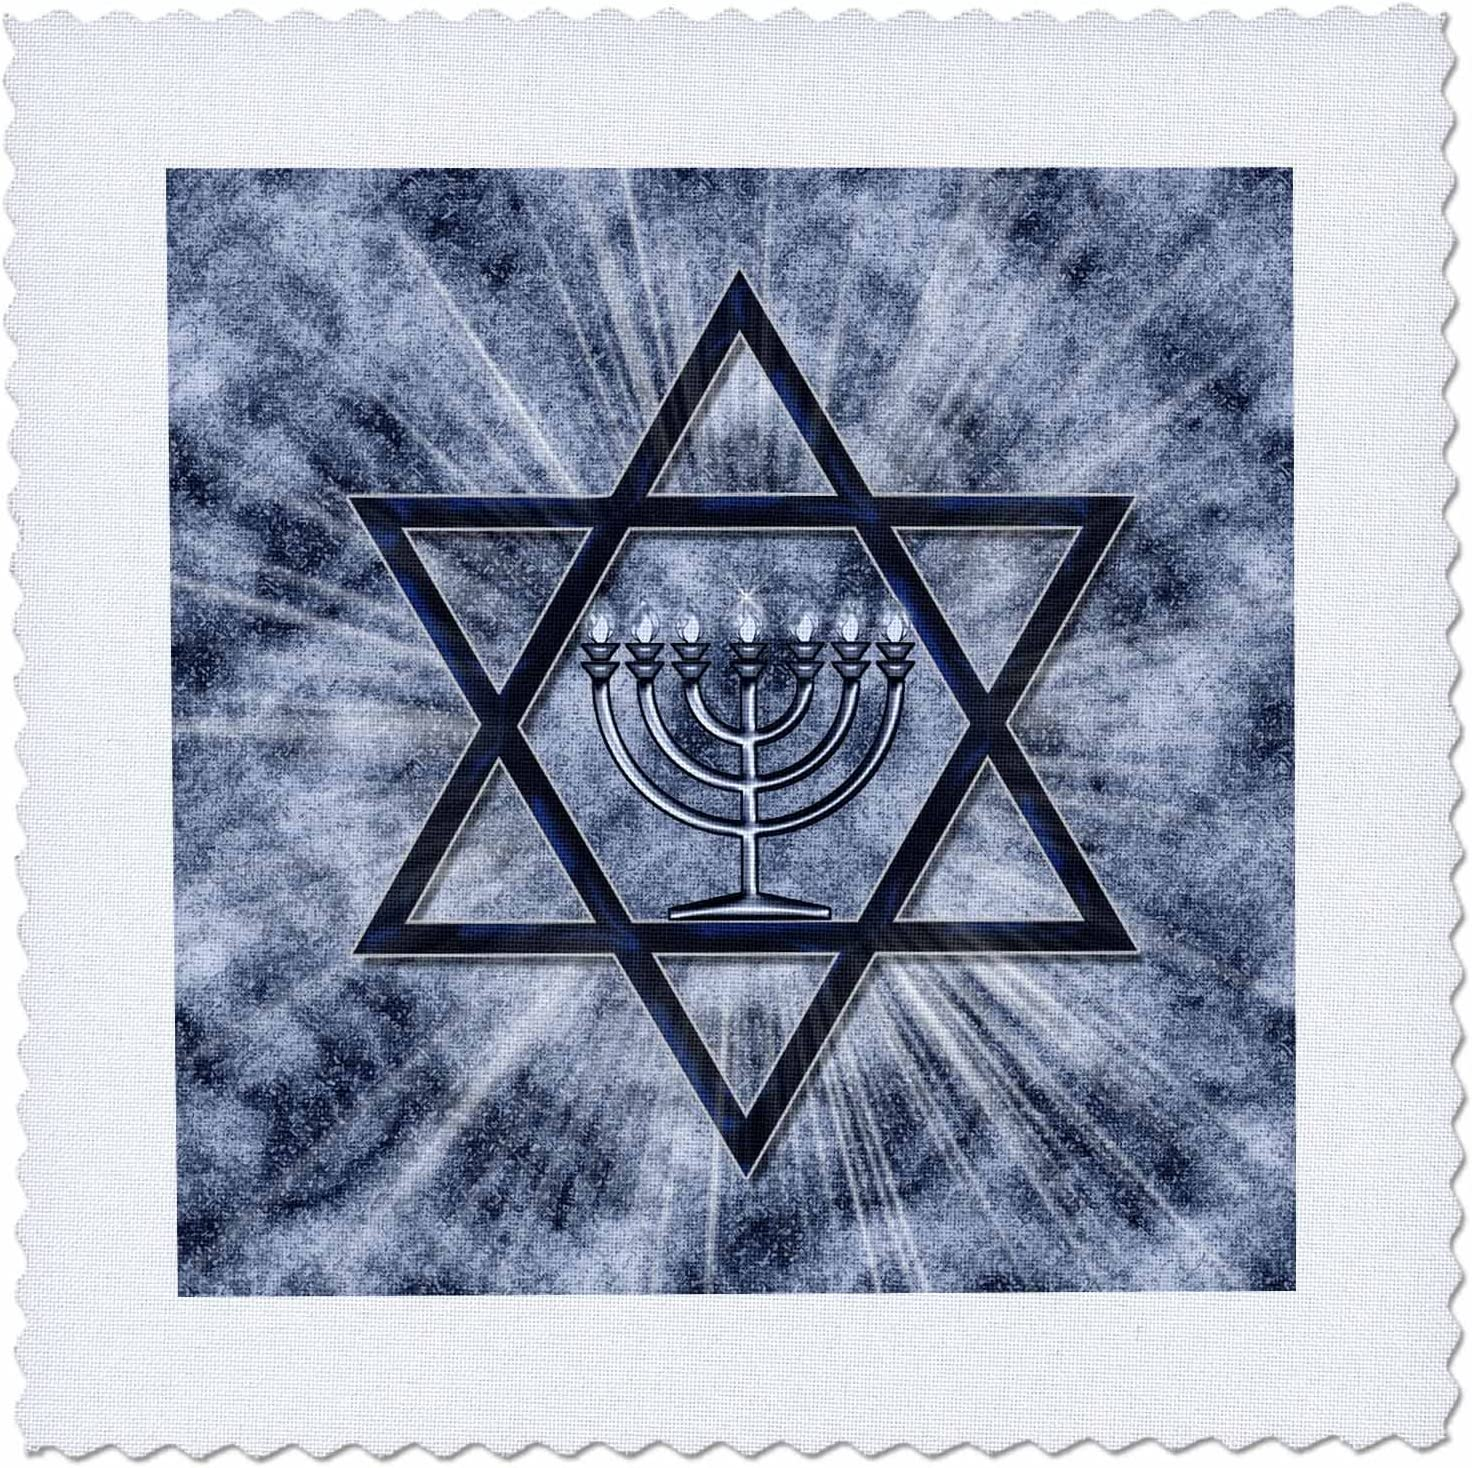 10 by 10-Inch 3dRose qs/_52283/_1 Hanukkah Menorah with Star of David in Blue Quilt Square